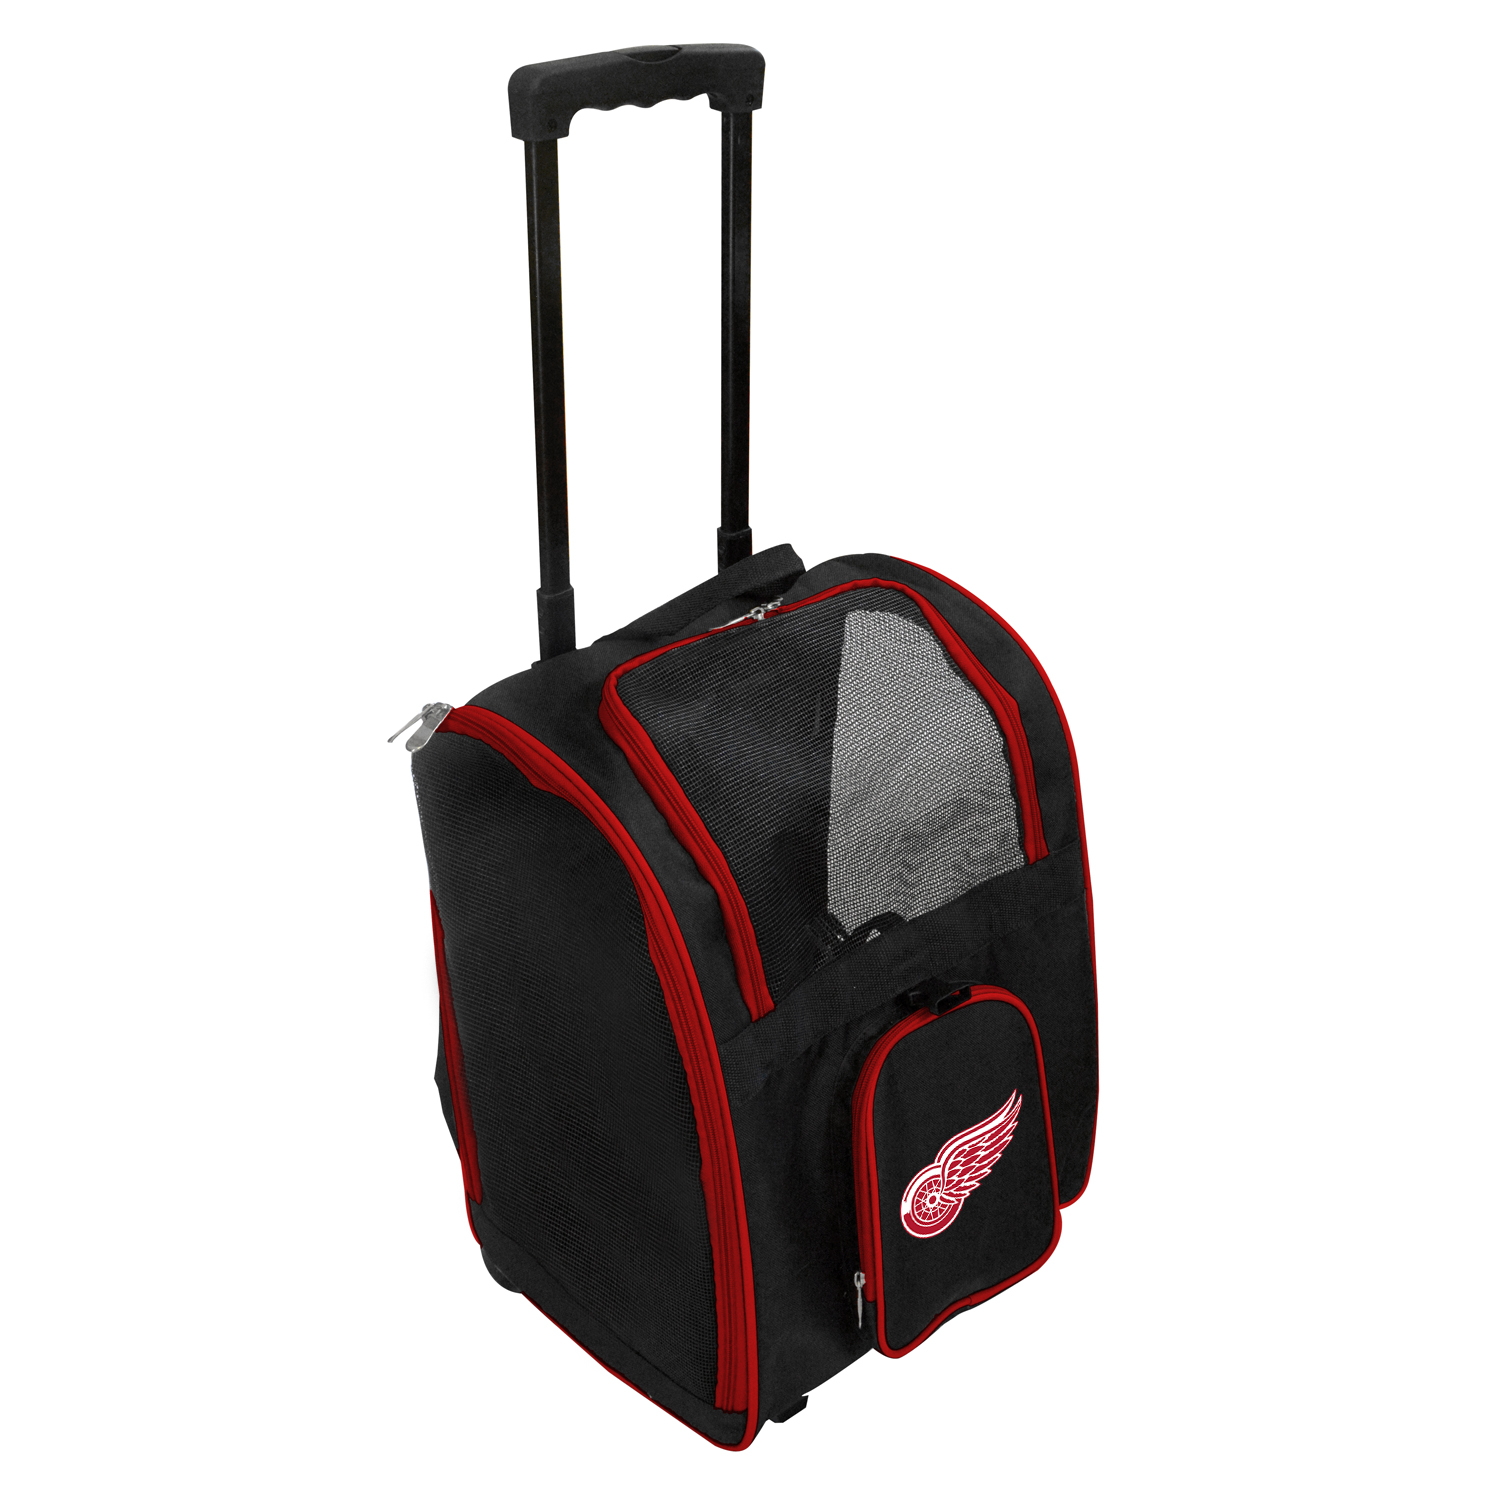 NHL Detroit Red Wings Premium Pet Carrier with Wheels